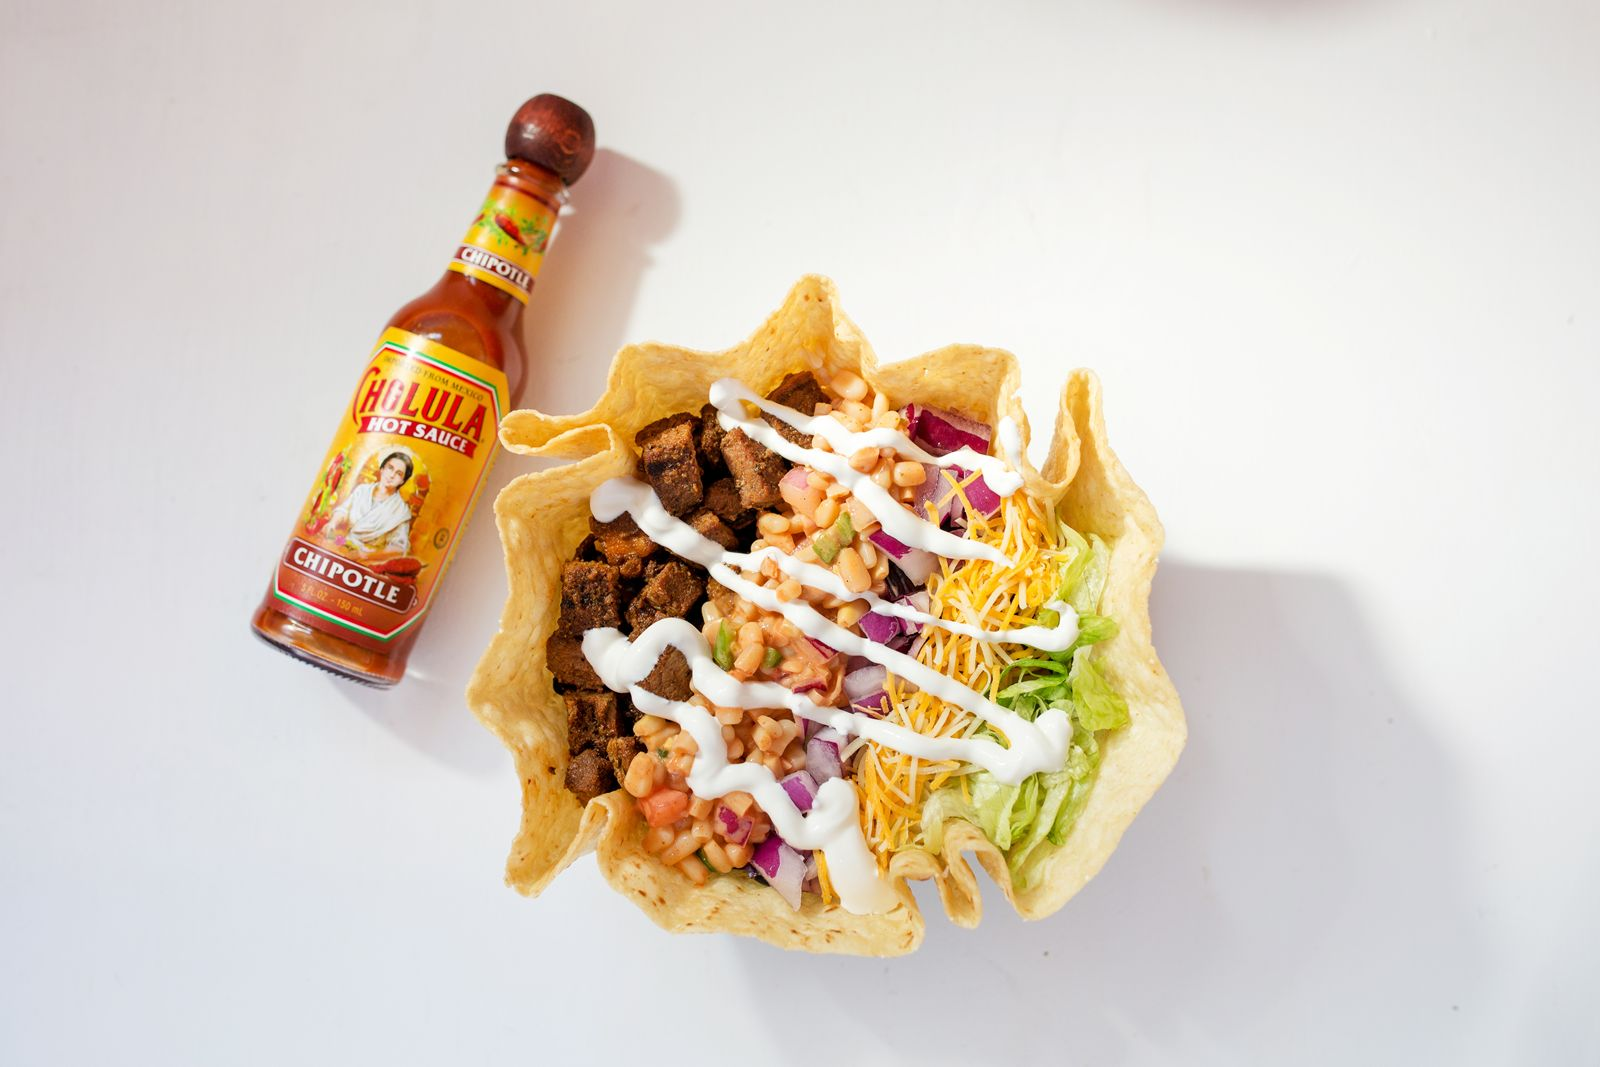 "Salsarita's and Cholula Collaboration Is Just One More Step in Making the Chain ""Hot Stuff"" in the Restaurant Industry"